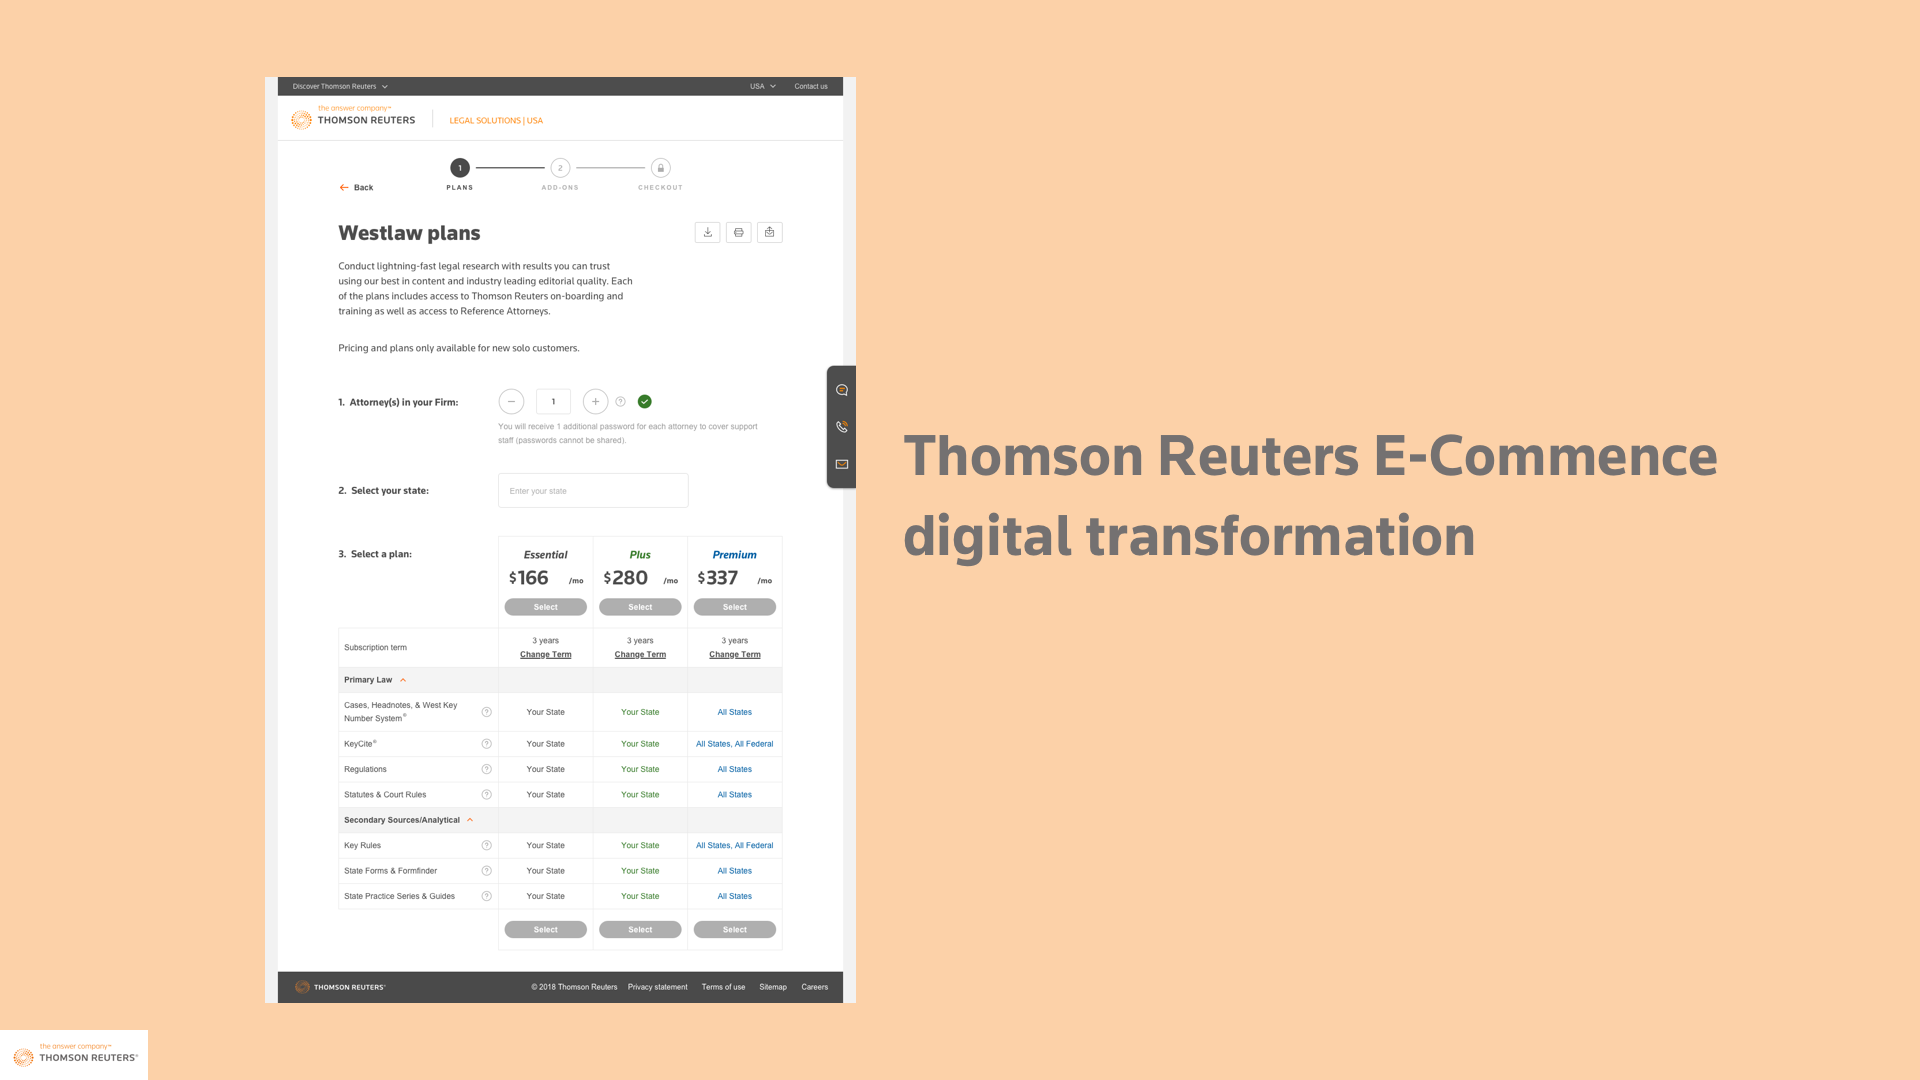 Thomson Reuters digital transformation